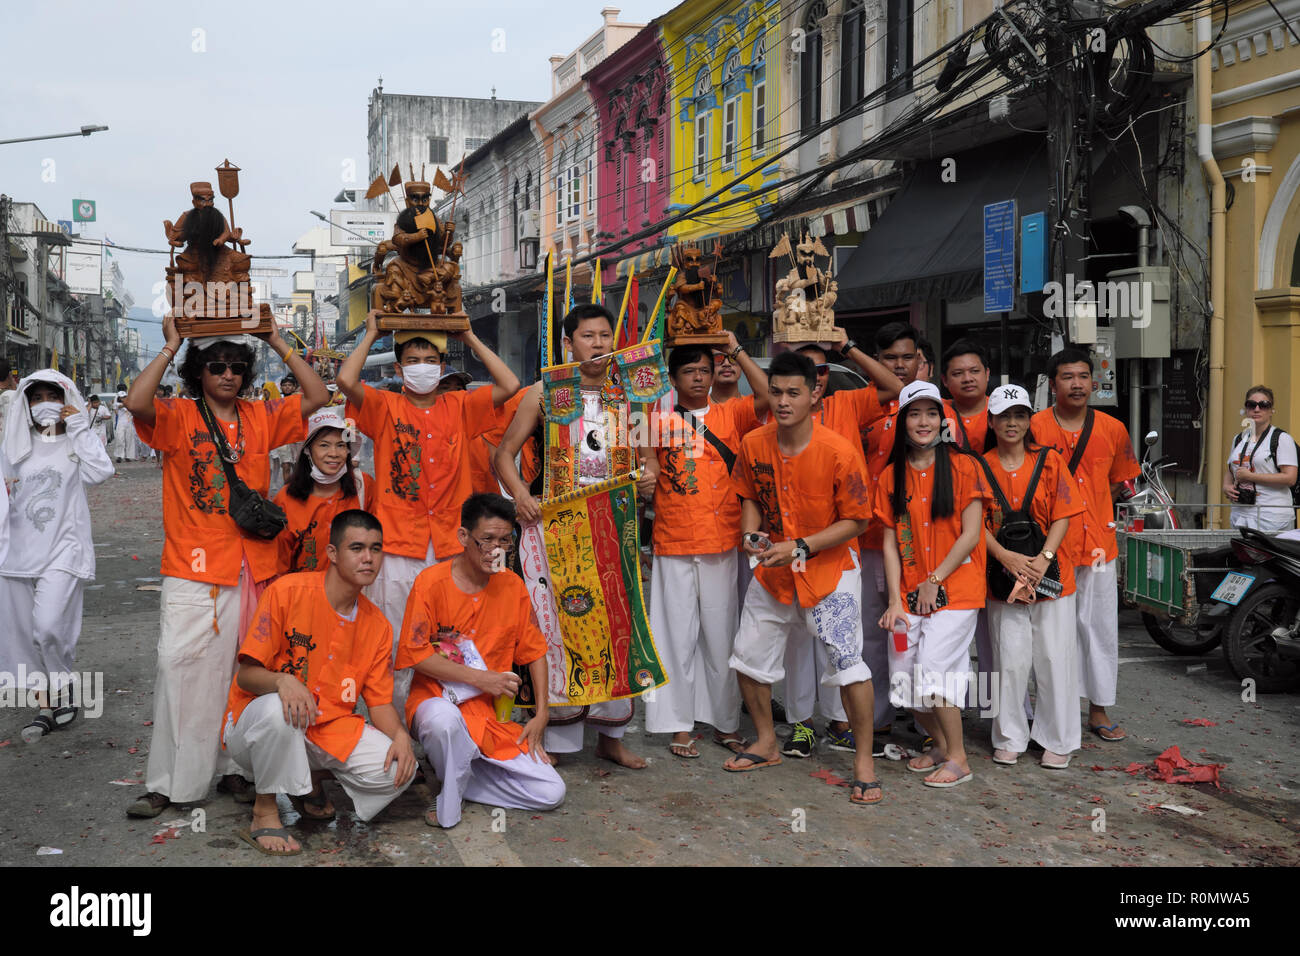 Participants in a procession during the Vegetarian Festival, Phuket Town, Thailand, pose for photos, some holding the figures of Chinese Emperor Gods - Stock Image